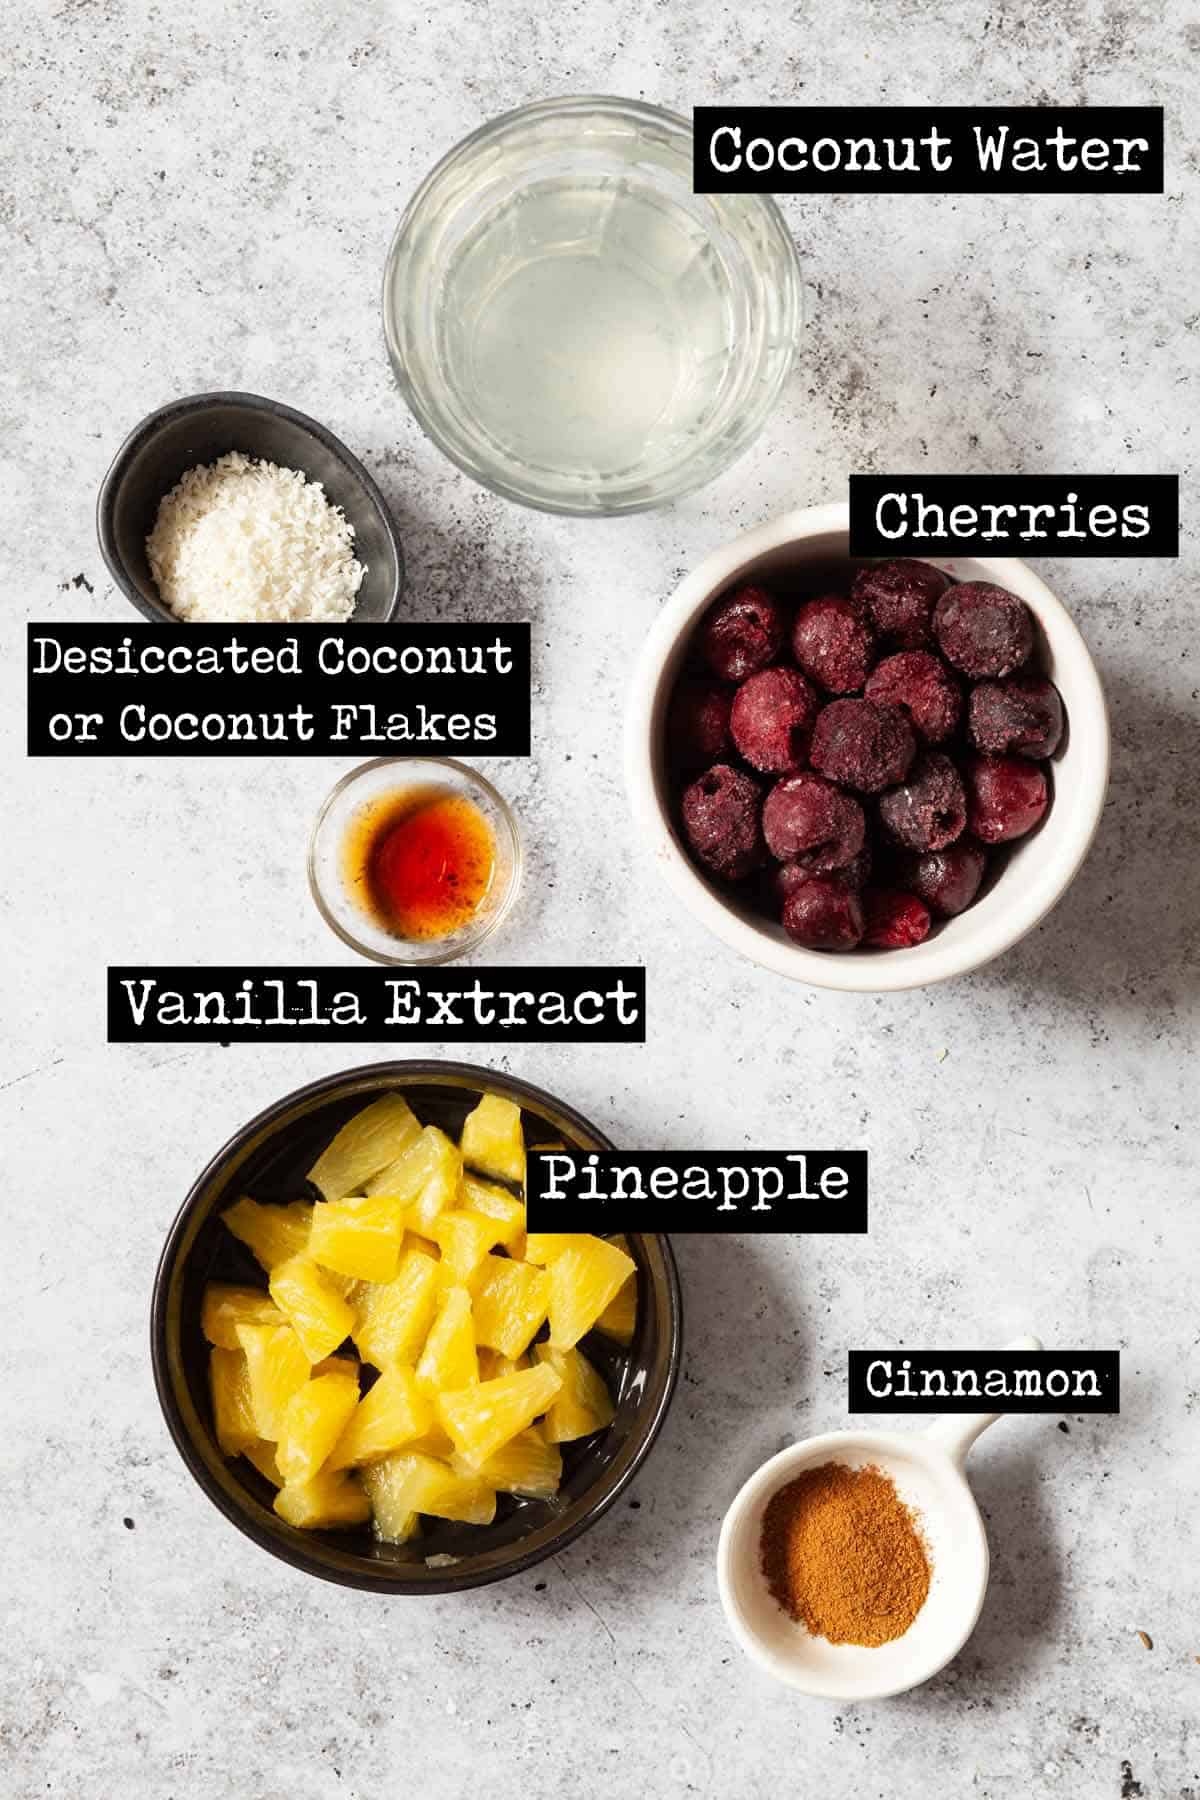 Ingredients for a blended fruit drink with text overlay